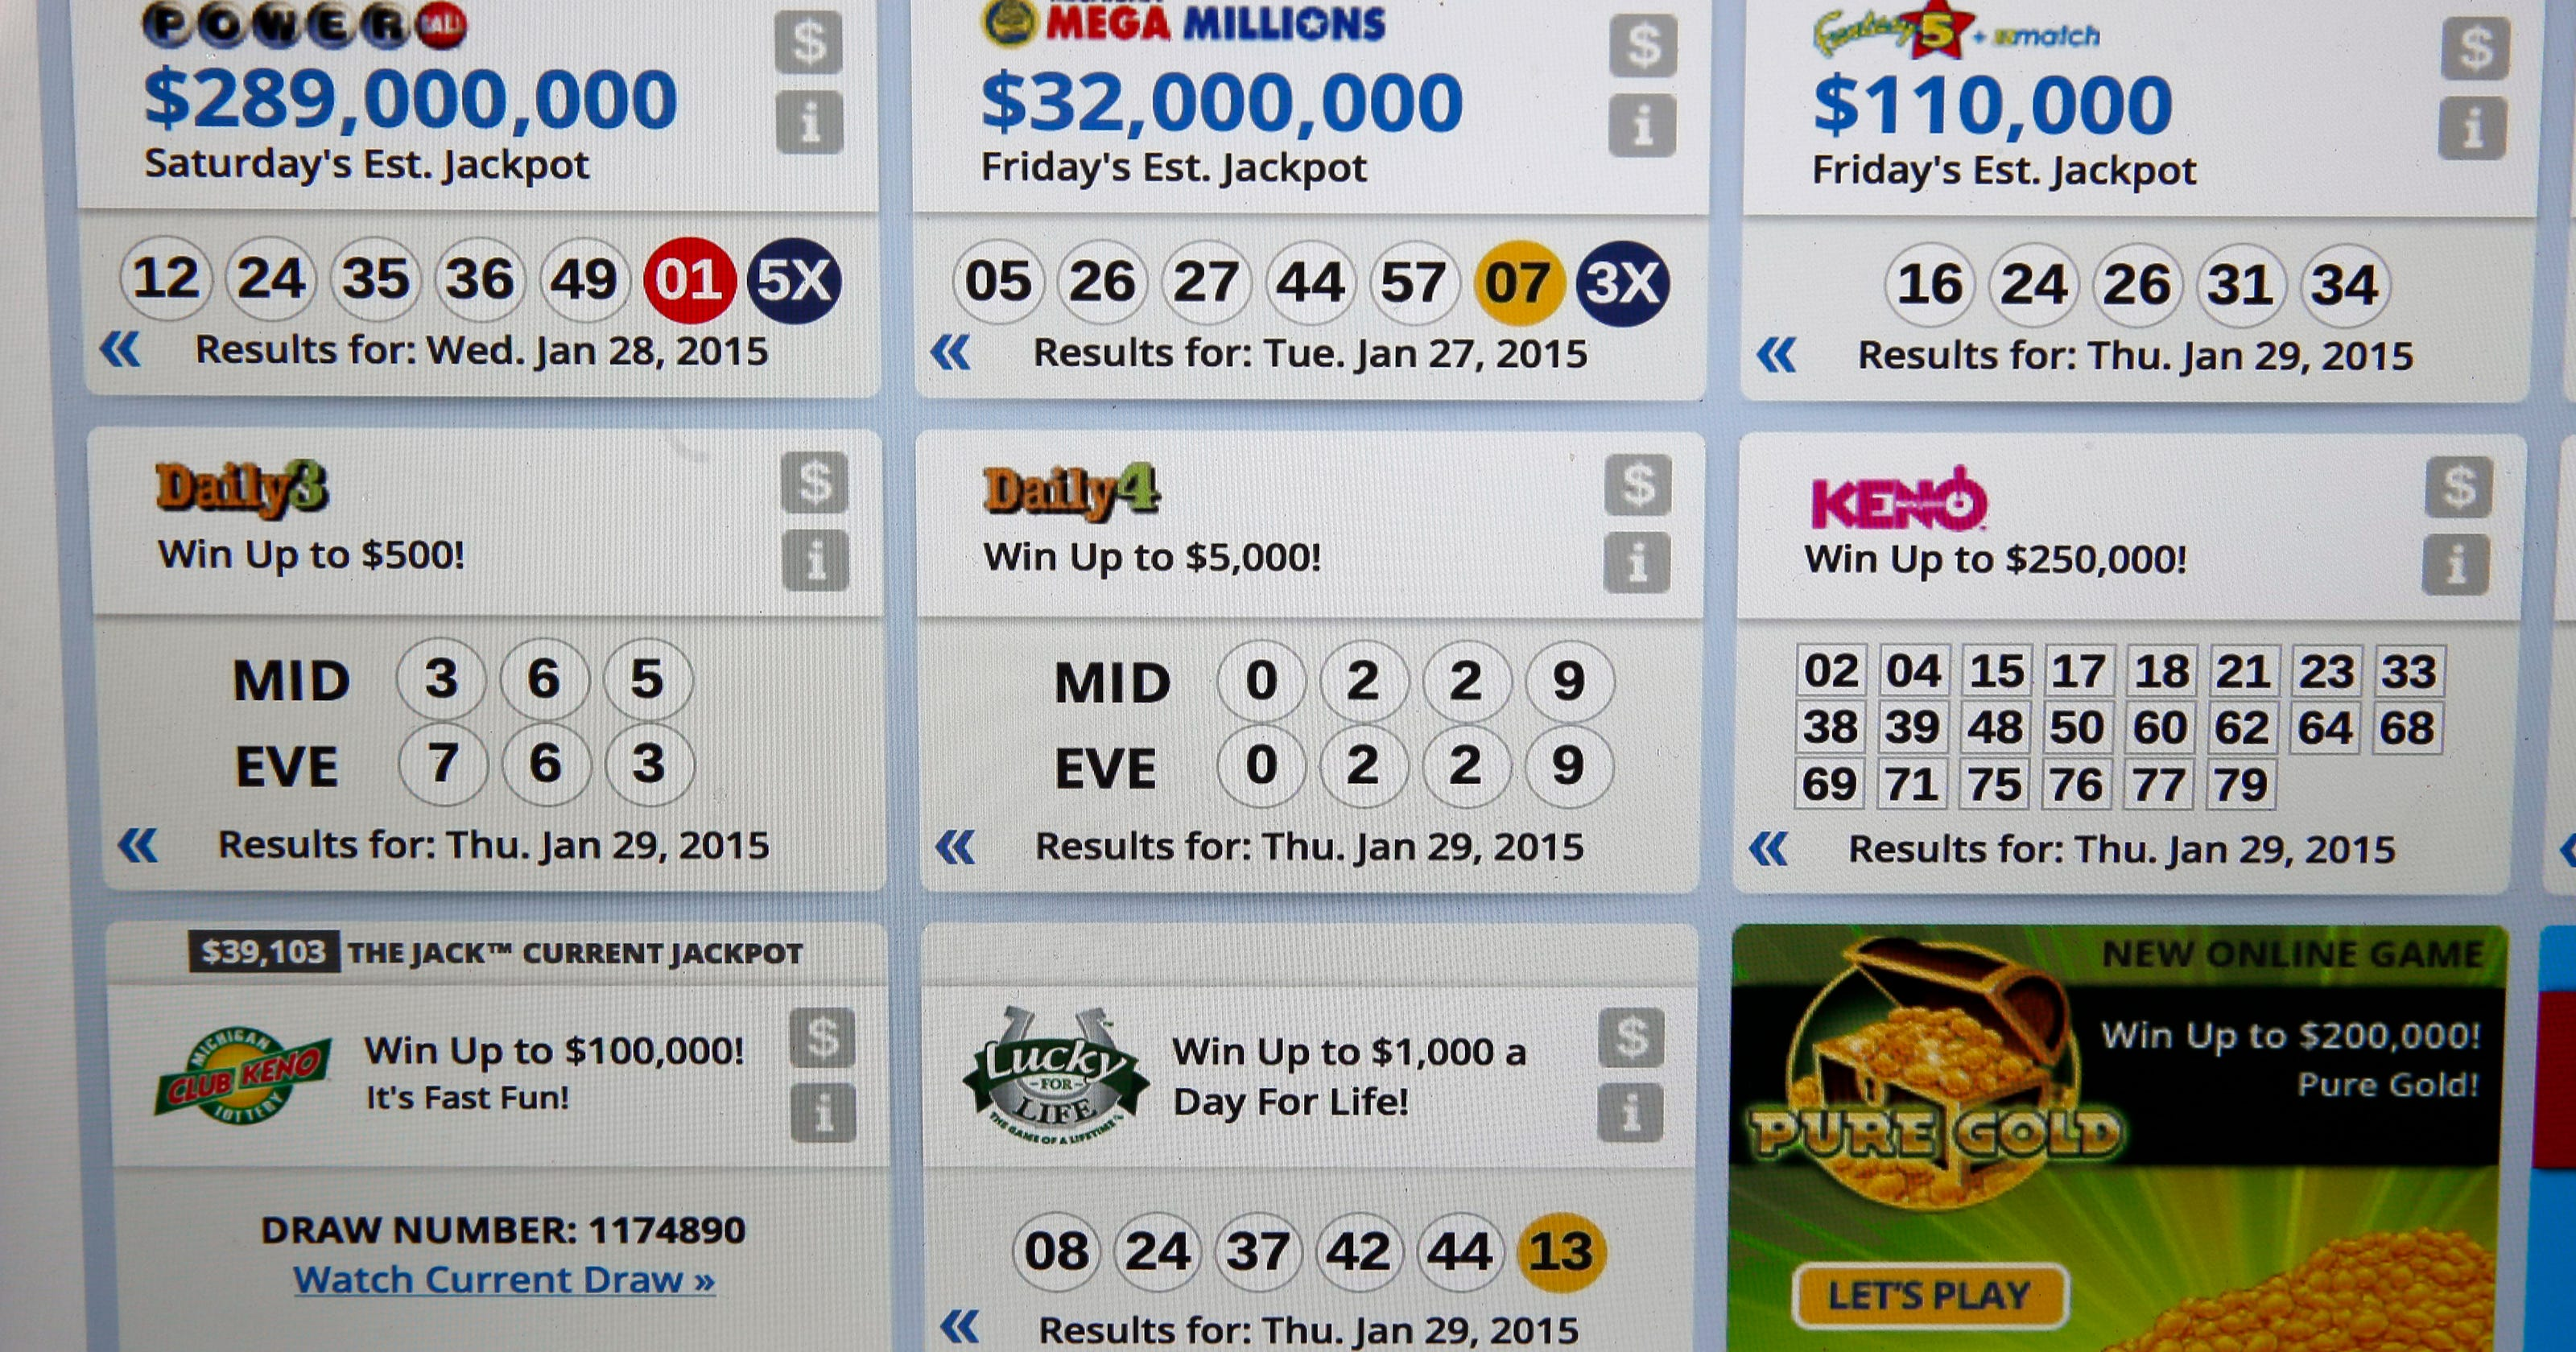 0, 2, 2, 9 come up twice in Michigan Lottery drawings